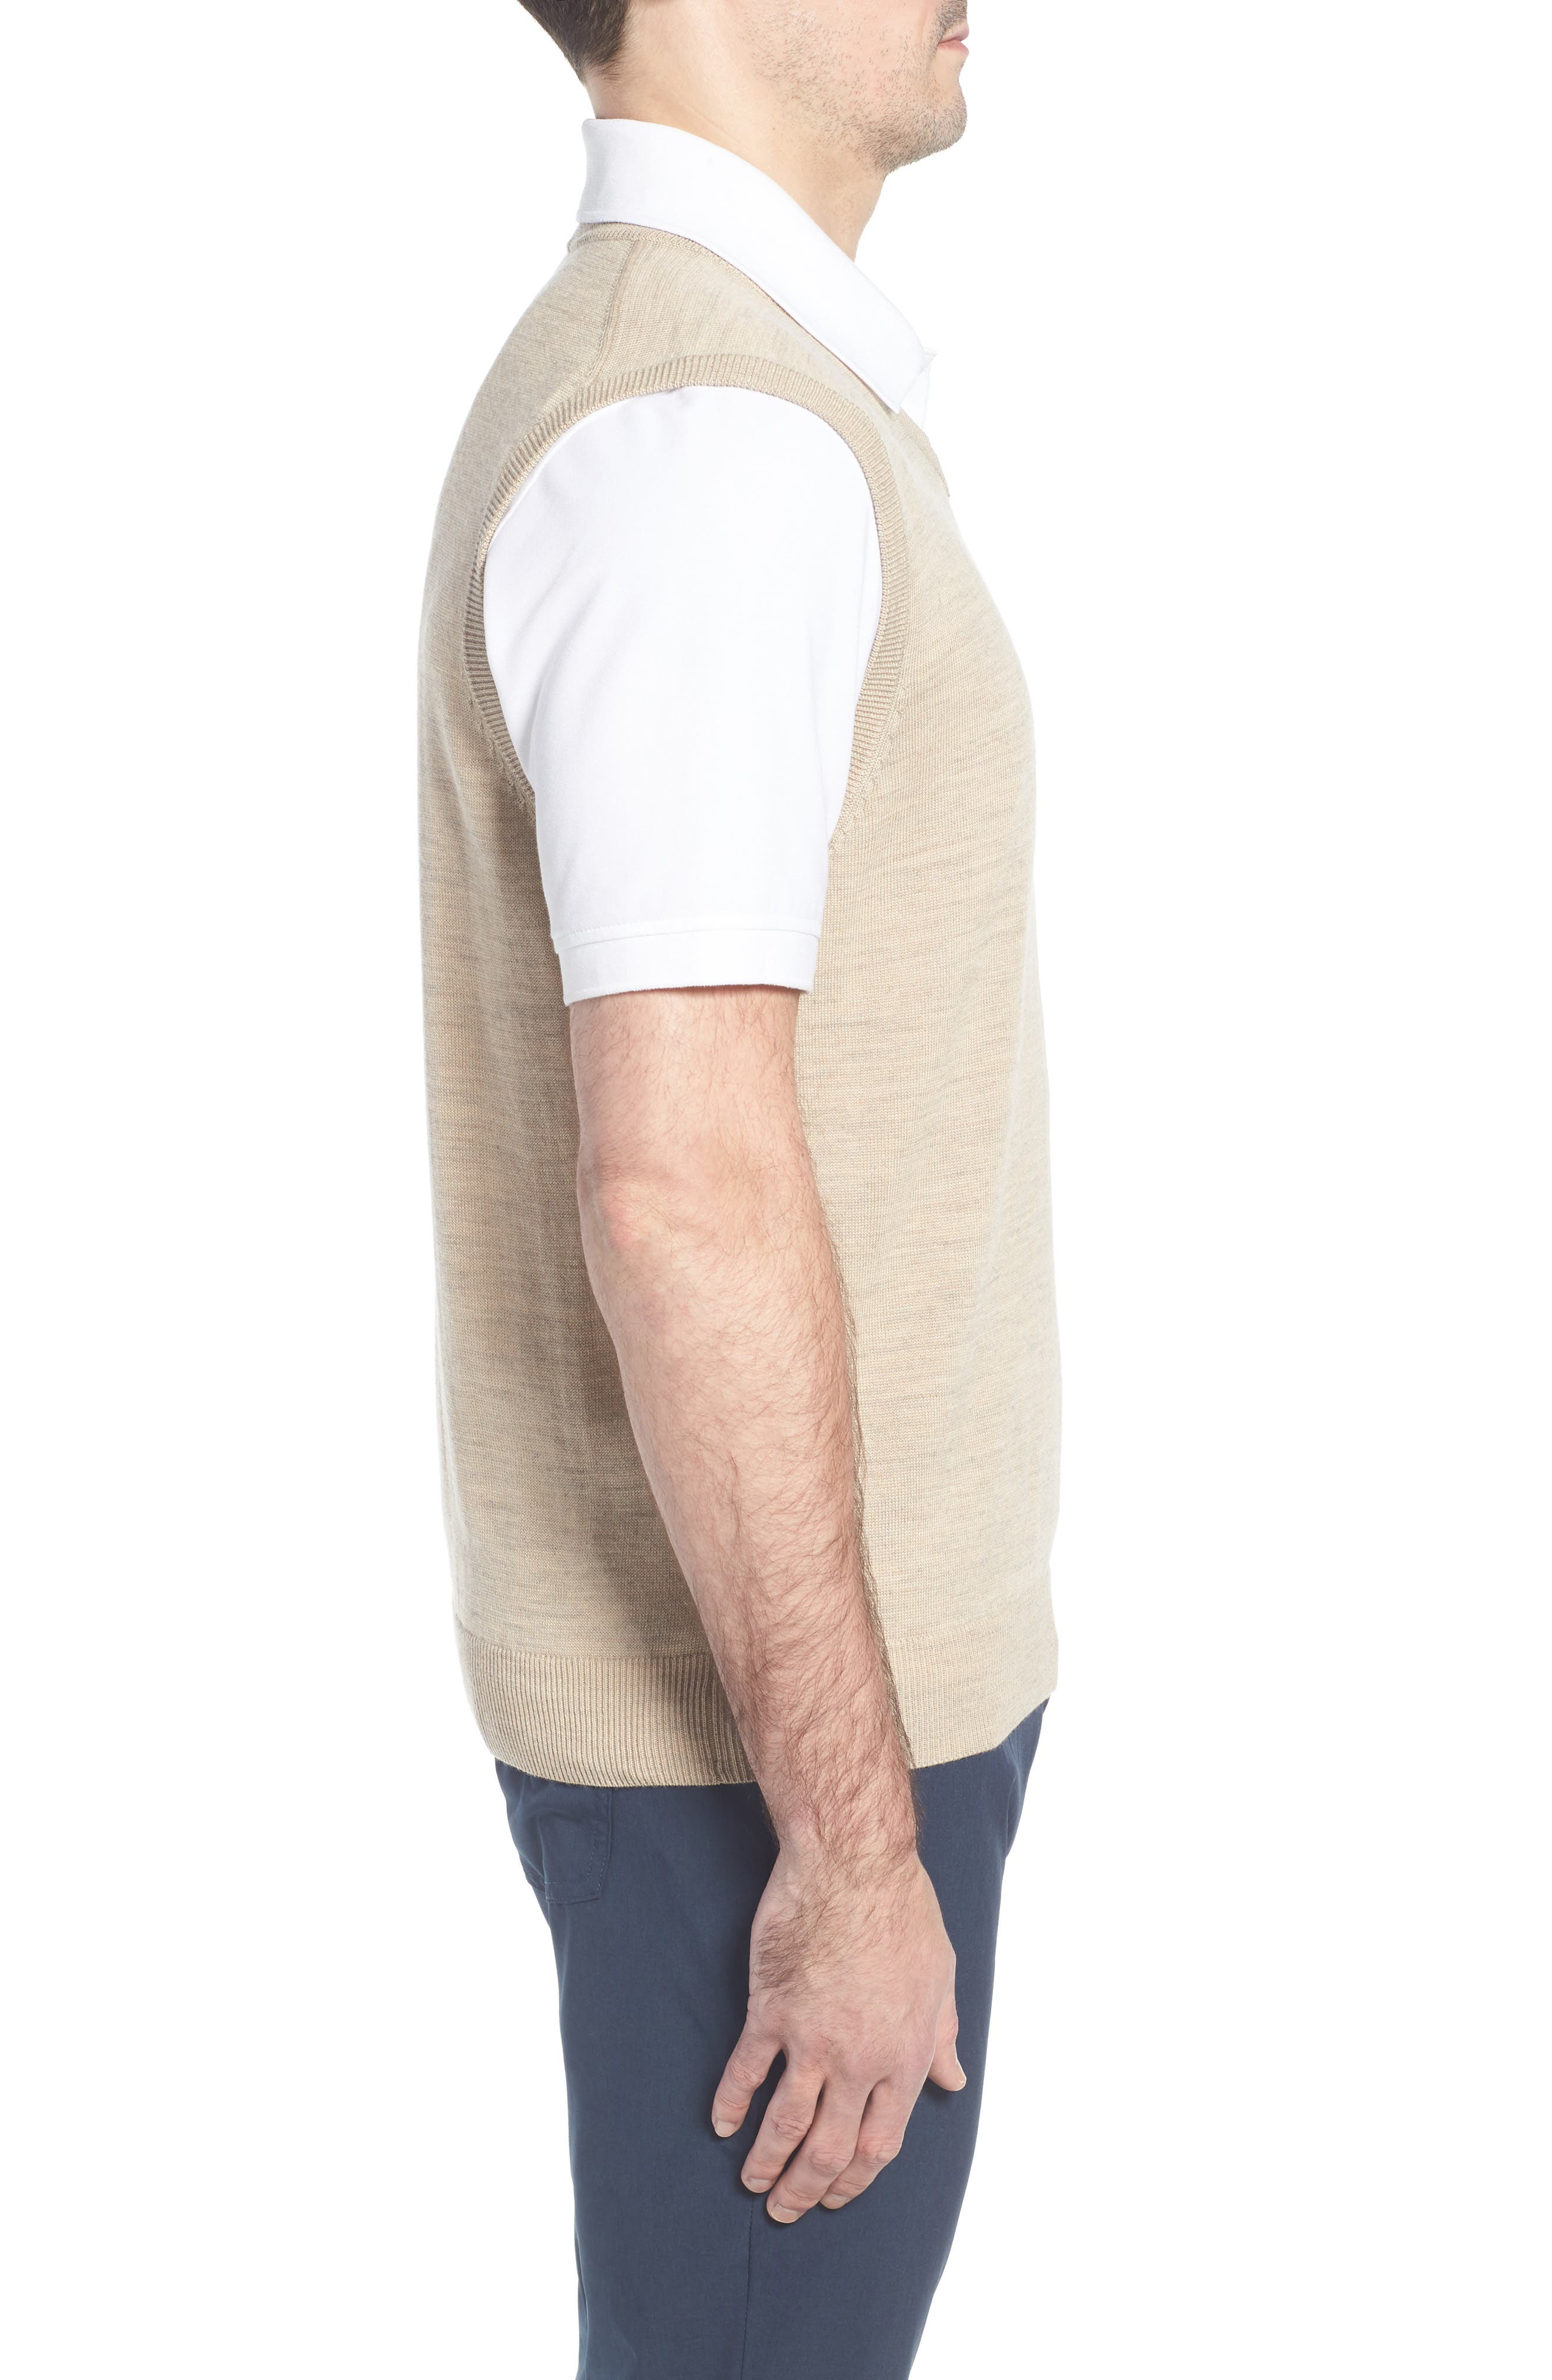 'Douglas' Merino Wool Blend V-Neck Sweater Vest,                             Alternate thumbnail 3, color,                             SAND HEATHER